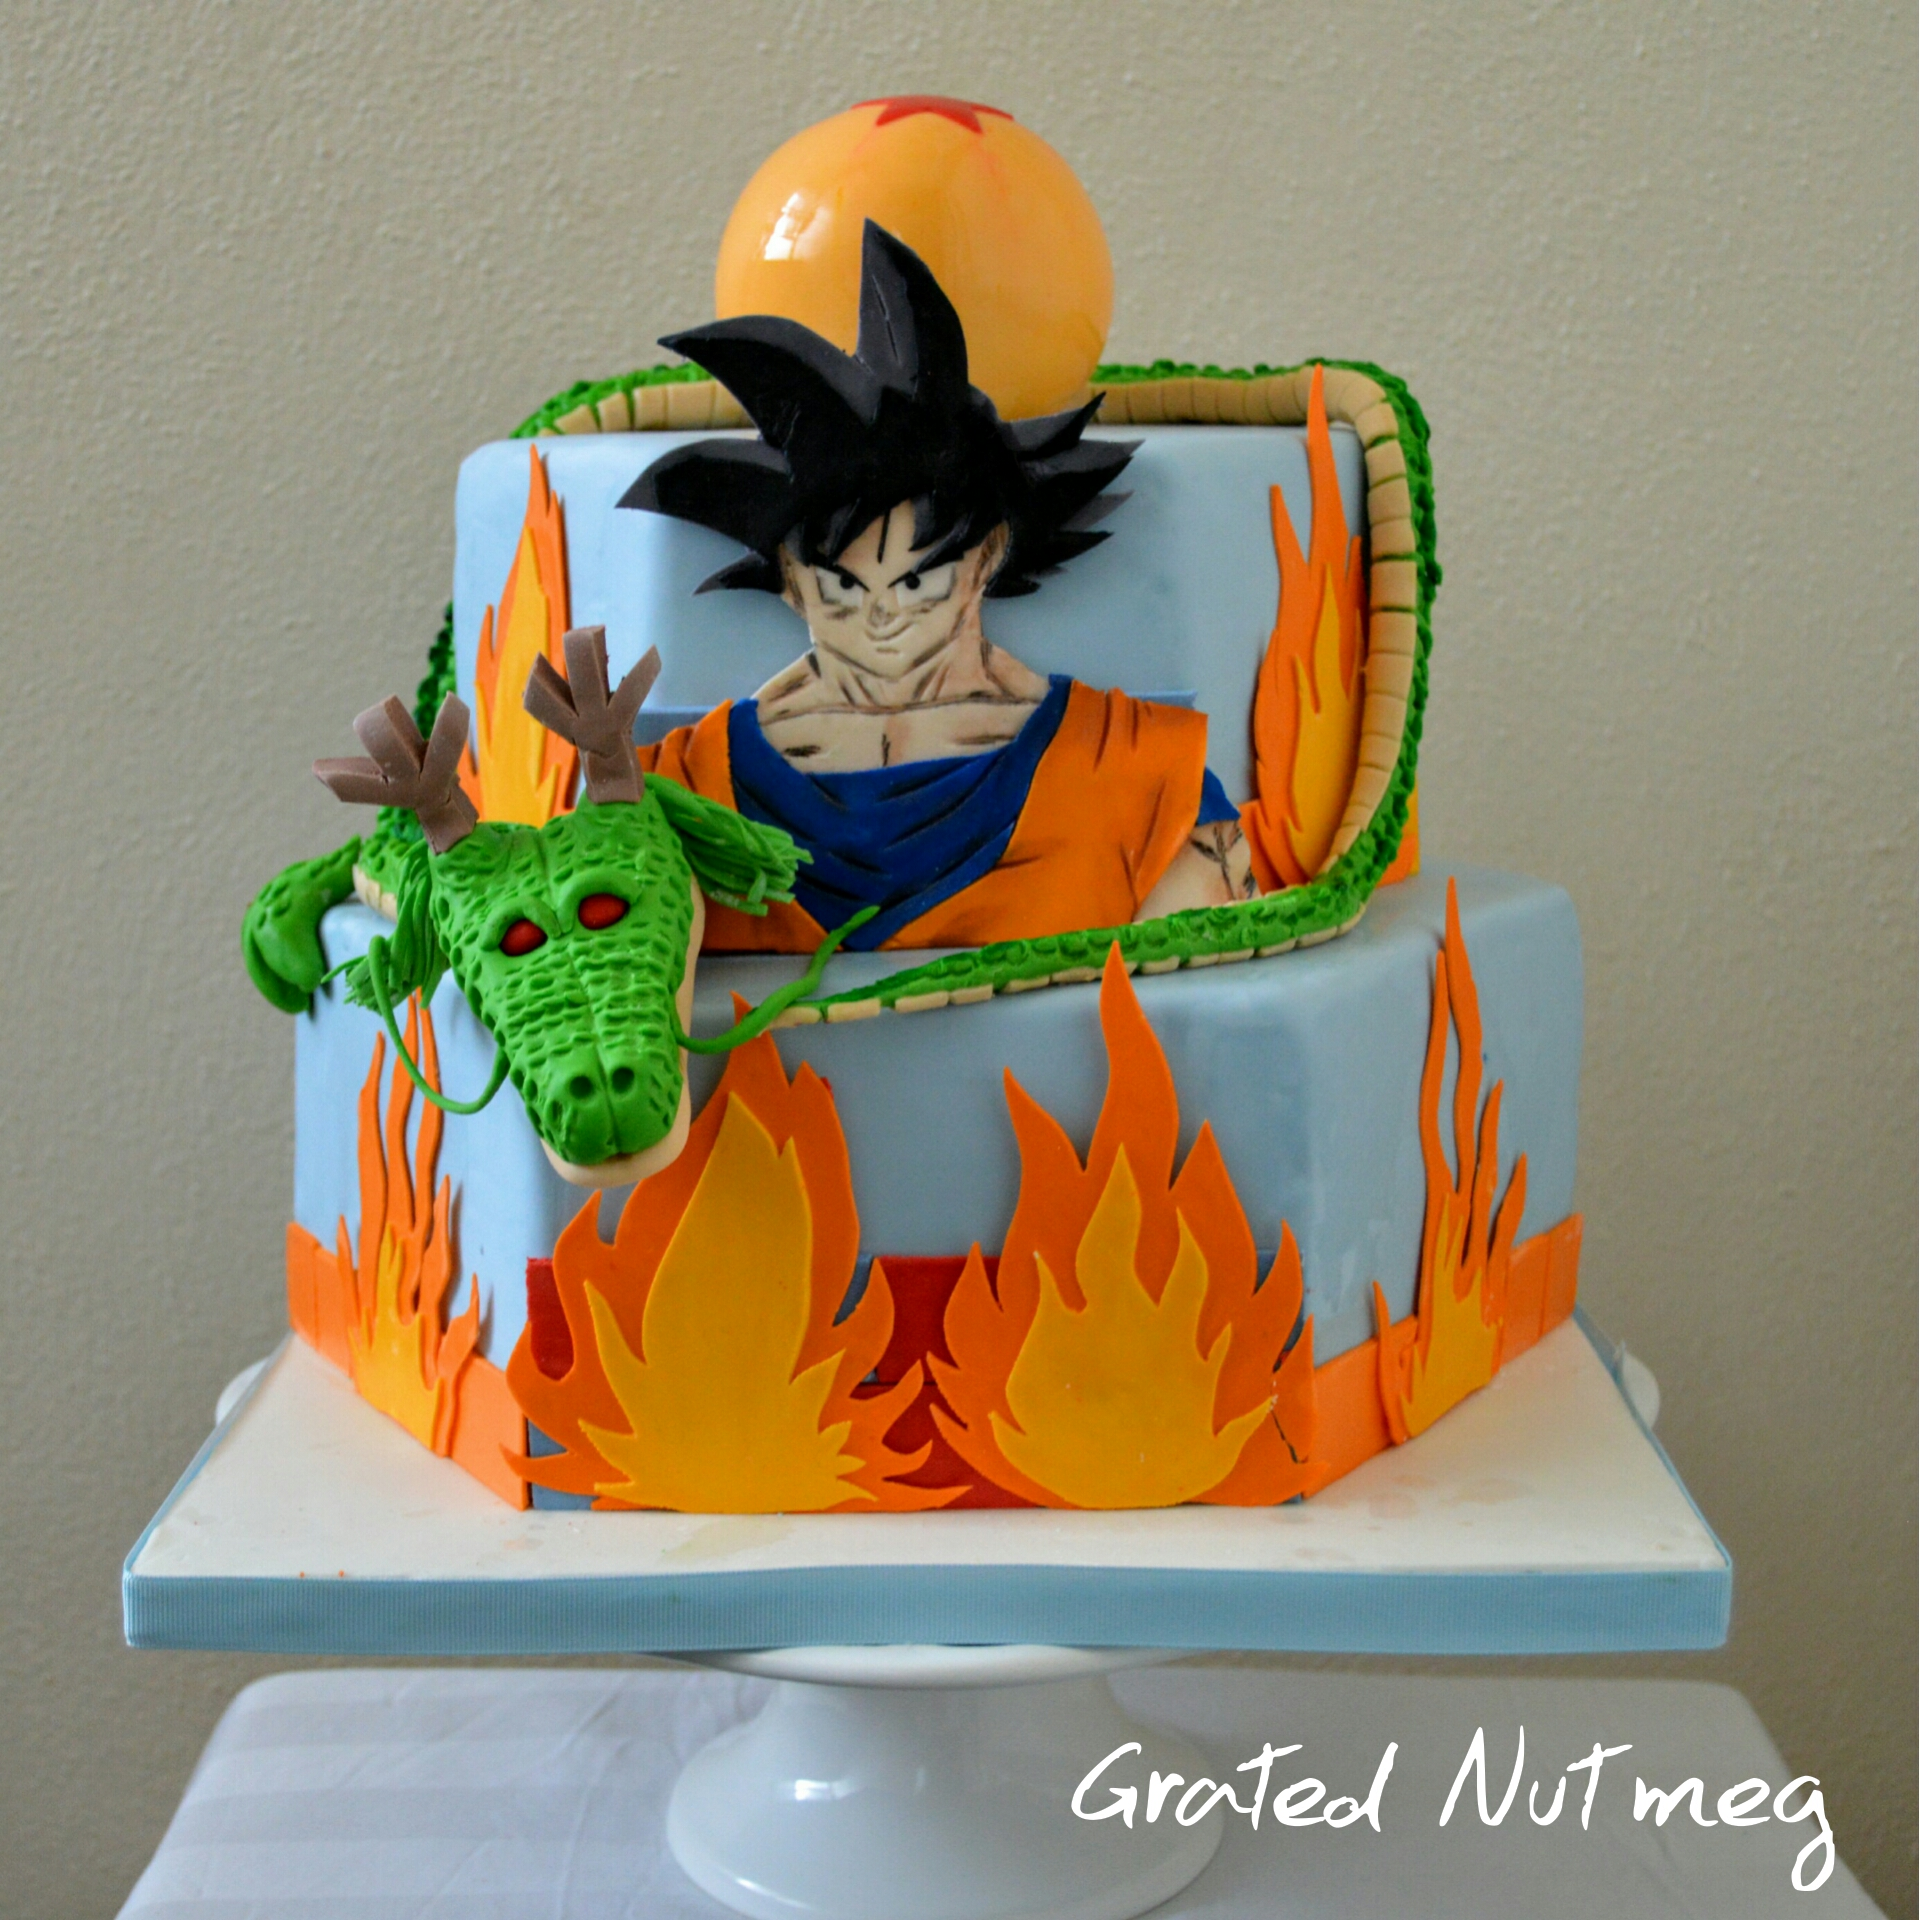 Cake Arch Balloon Design : Dragon Ball Z Cake   Grated Nutmeg